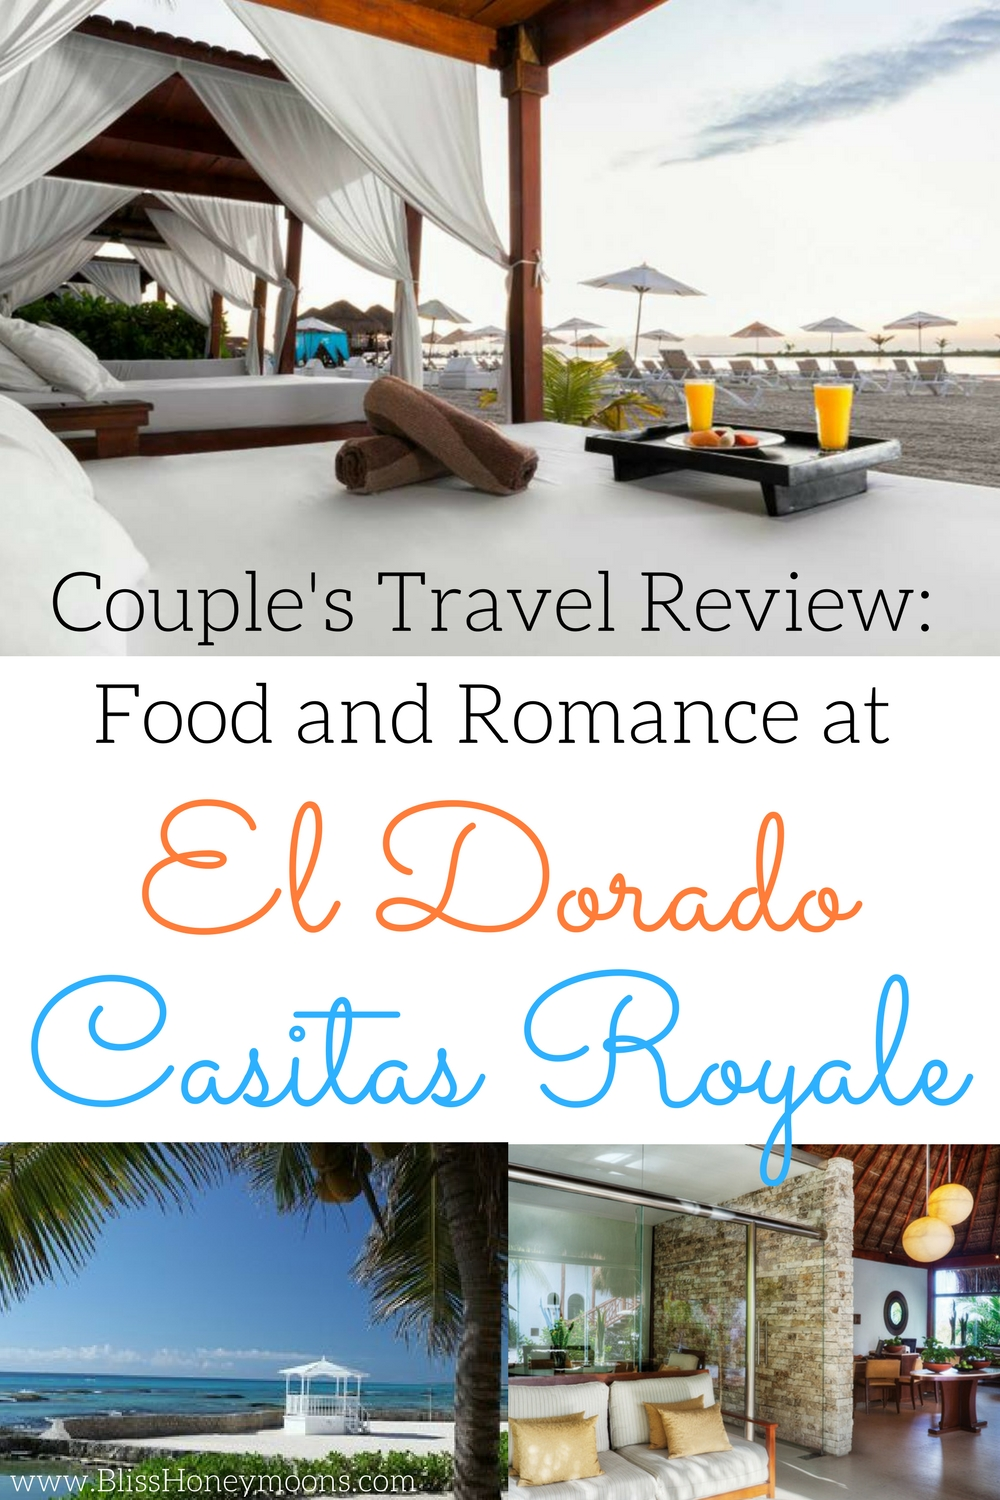 honeymoon planning solution, El Dorado Casitas Royale review, great honeymoon experience, great honeymoon food, Bliss Honeymoons review, best destination honeymoon, tropical romantic honeymoon